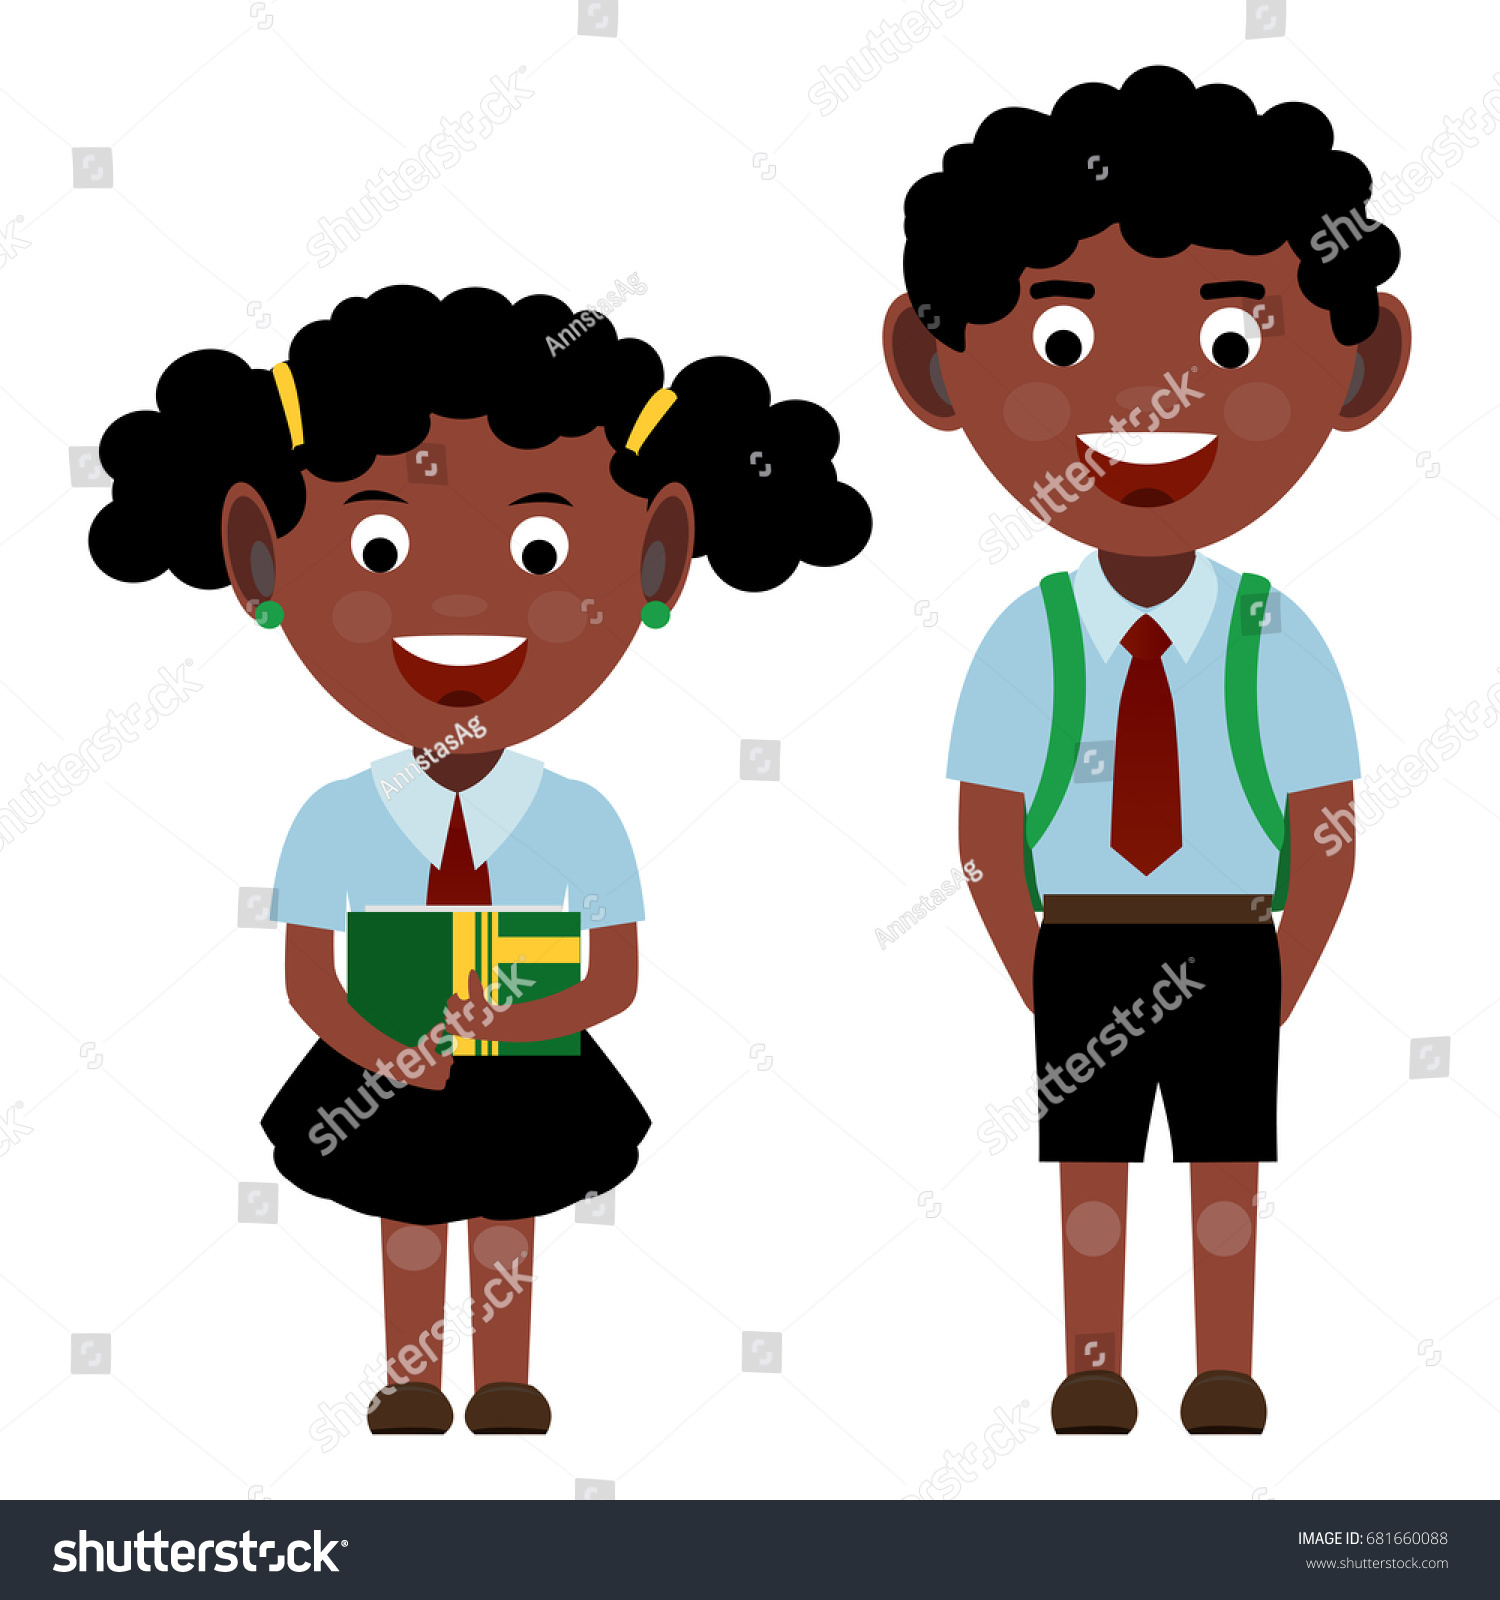 get dressed for school clipart. group of black curly smiling cheerful school children girl with a book in her hands get dressed for clipart